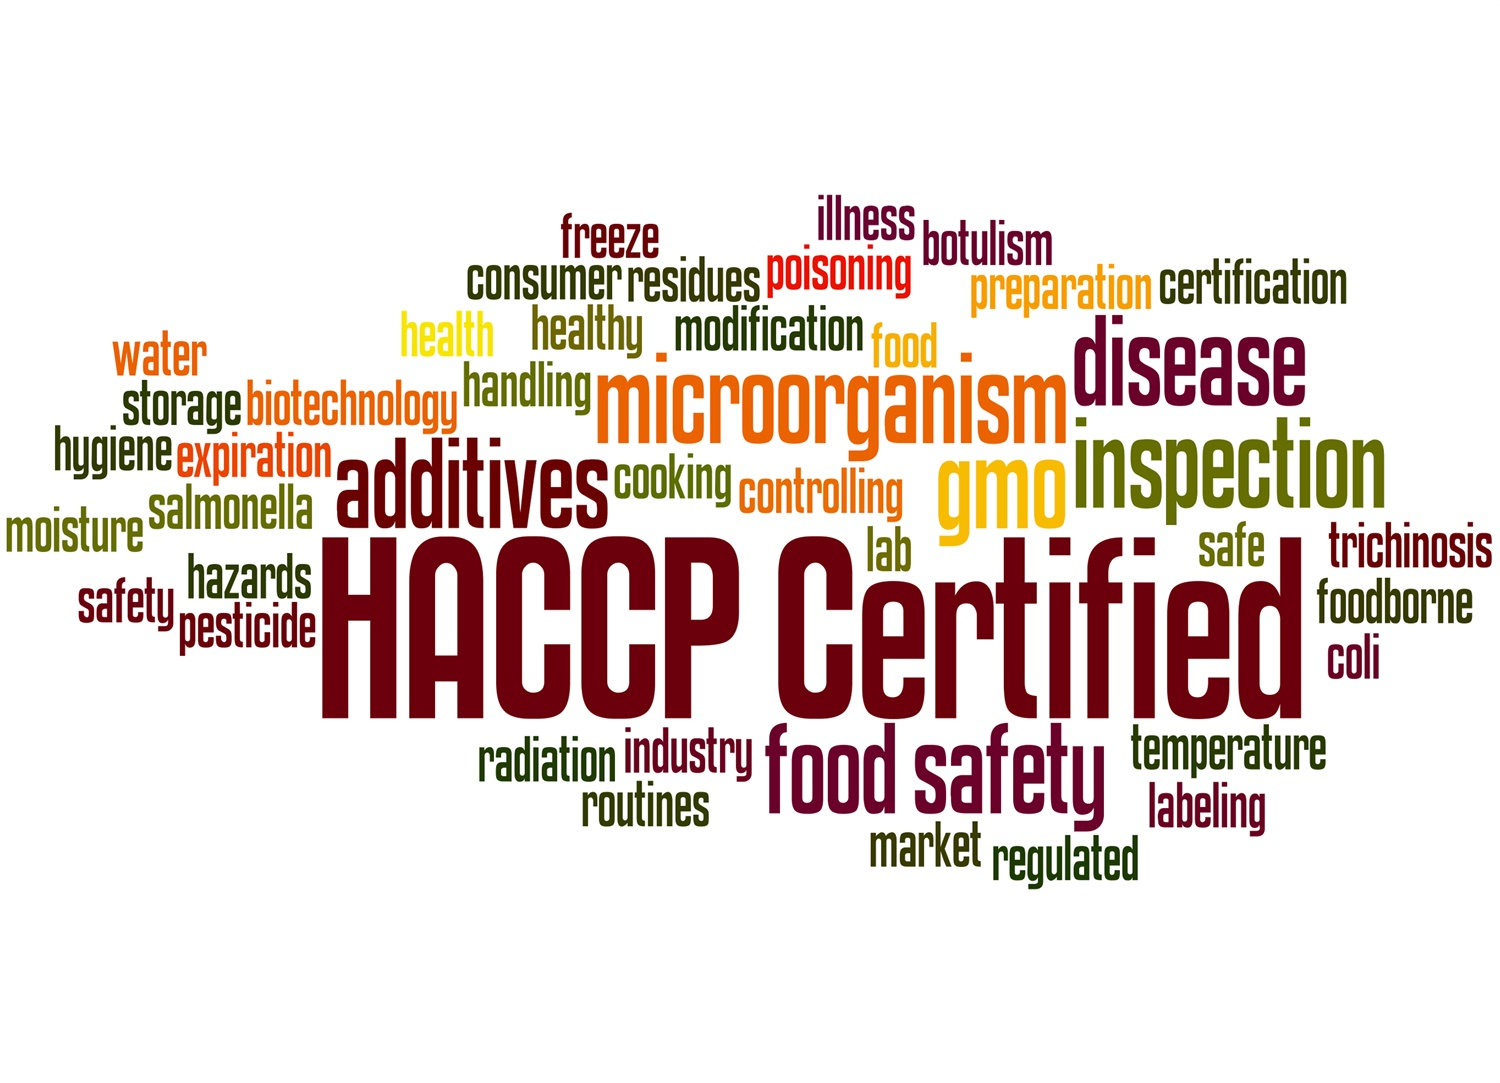 PELATIHAN HACCP (Hazard Analysis Critical Control Point)